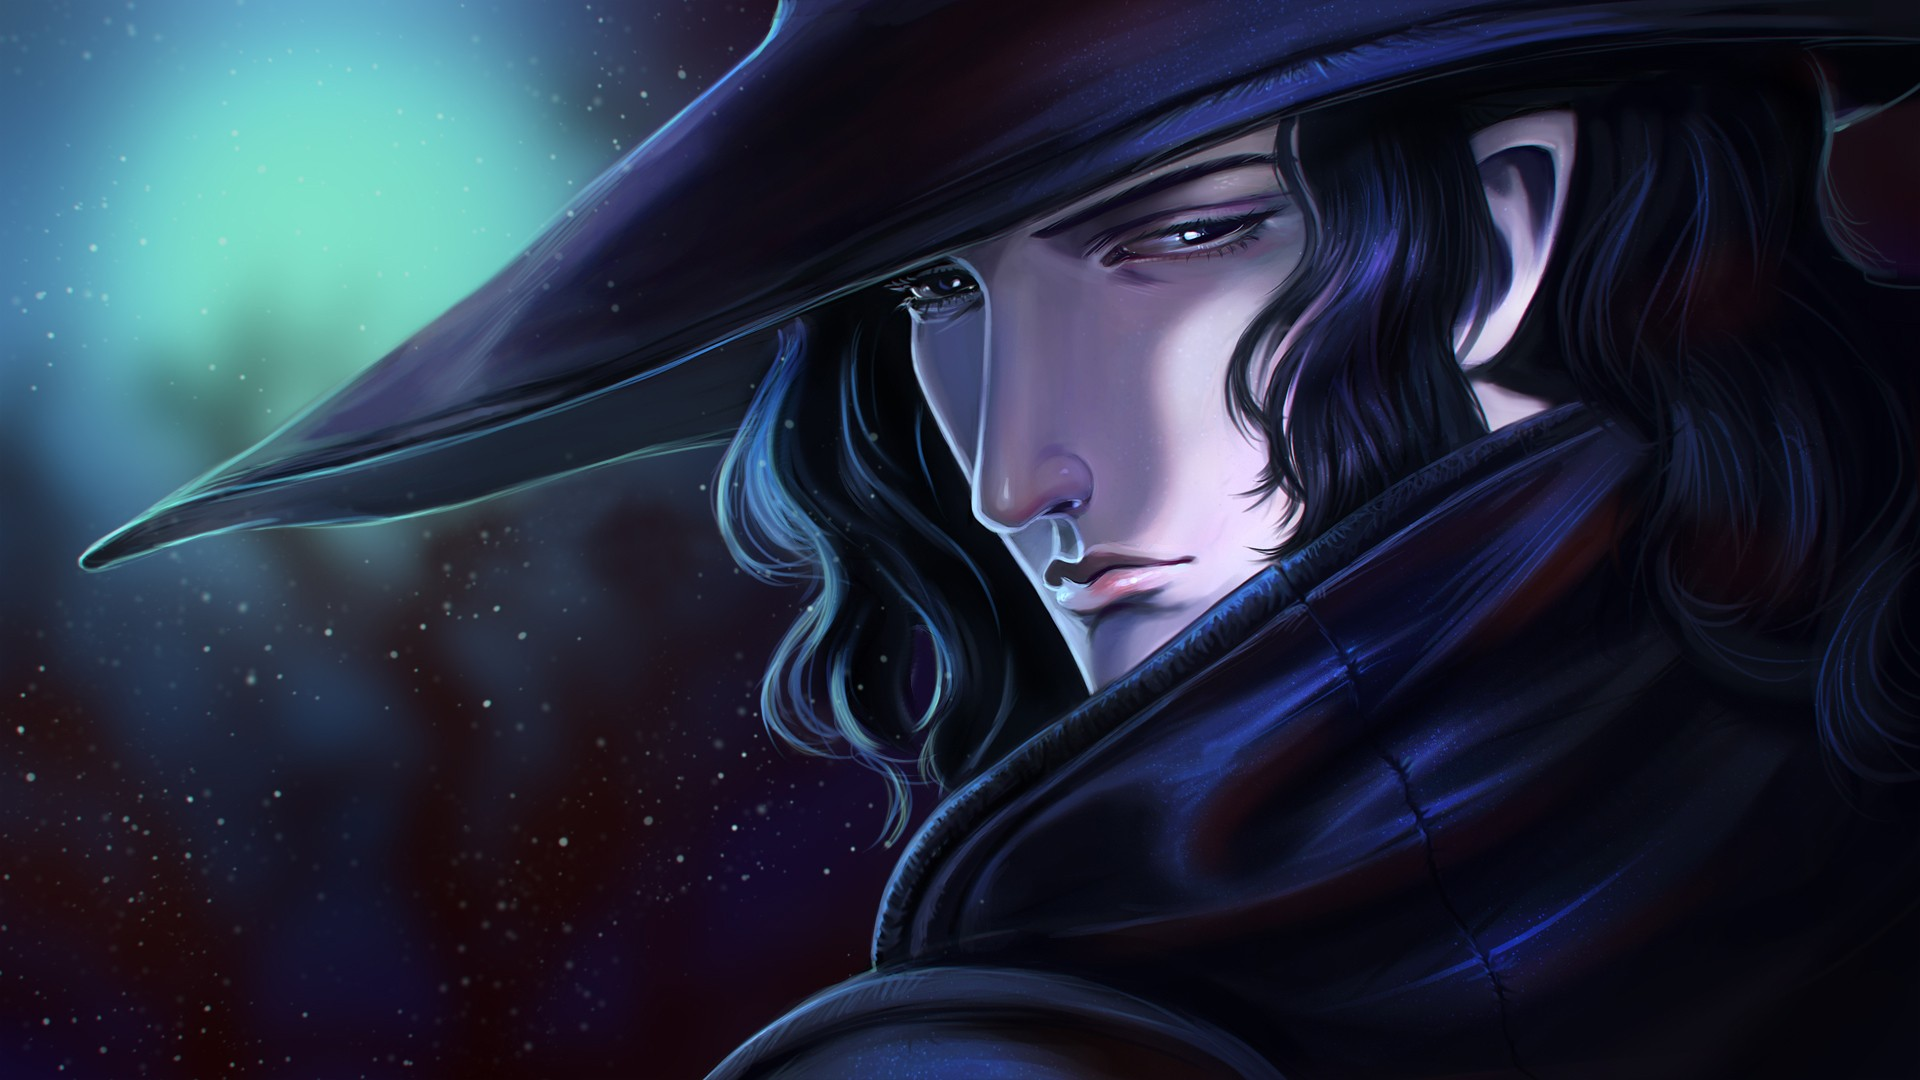 1920x1080 anime wallpaper download free awesome full hd - Wallpaper vampire anime ...